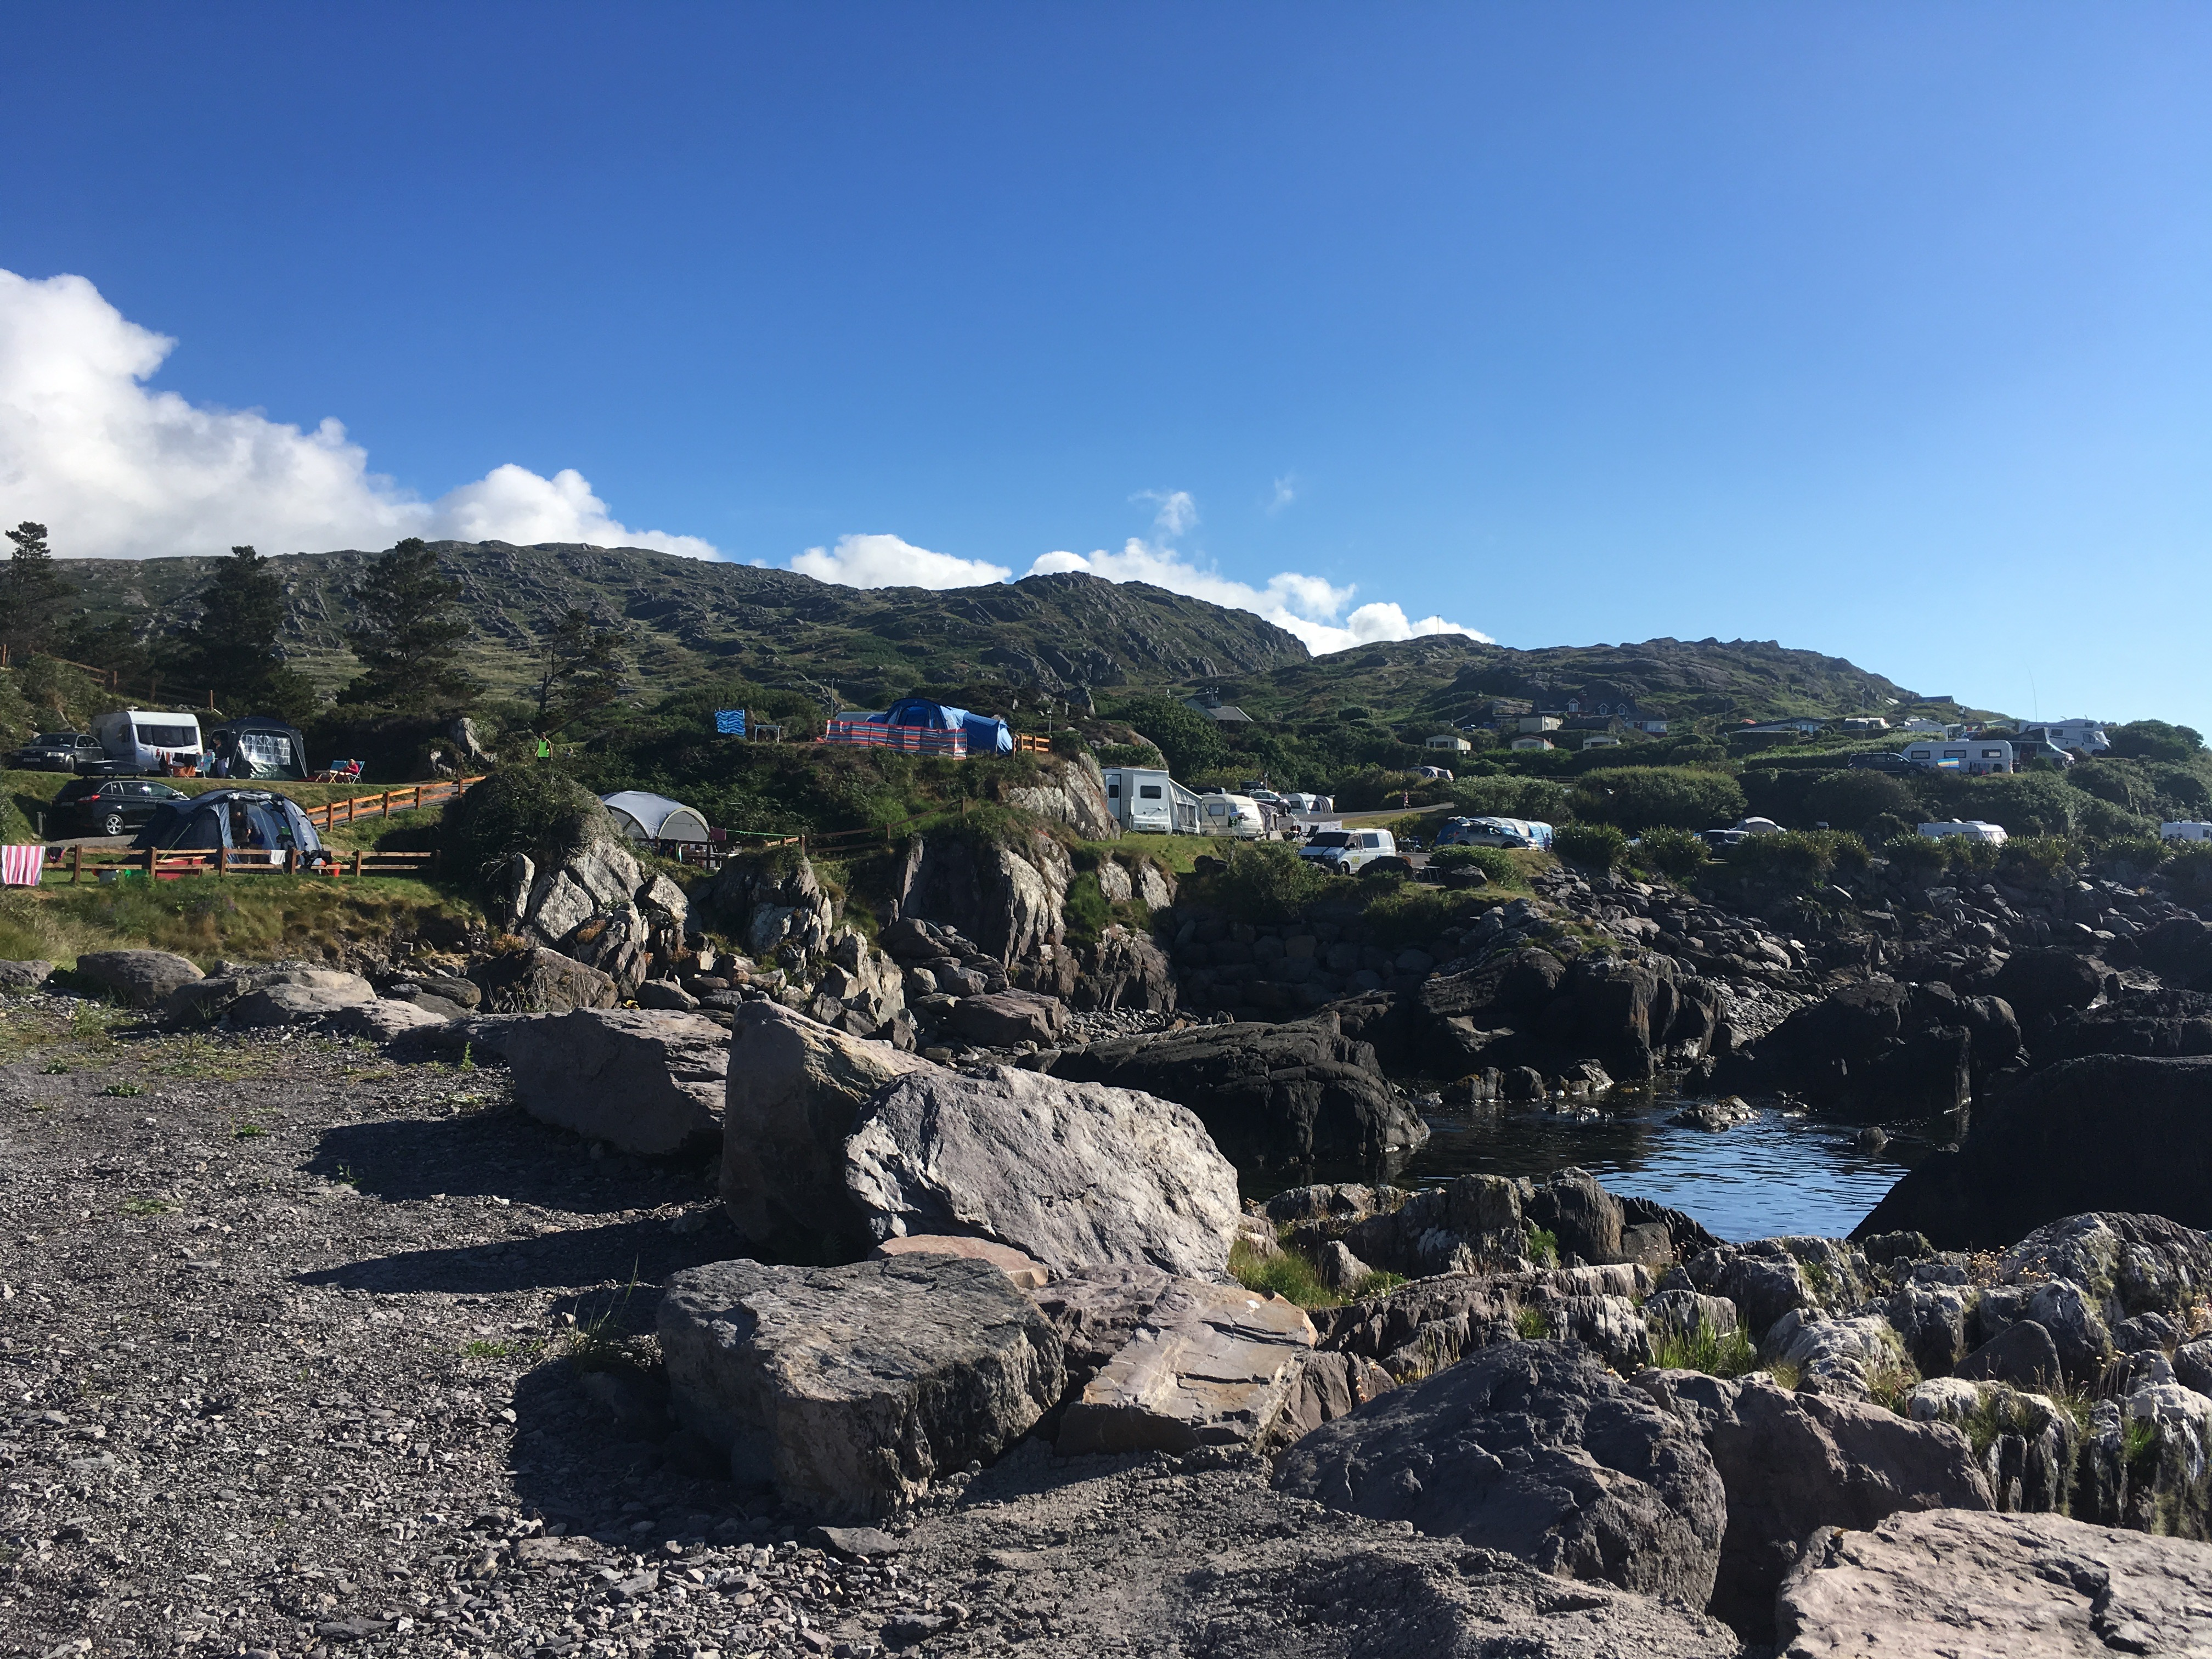 Ireland's beautiful Coastline Wave Crest campsite County Kerry